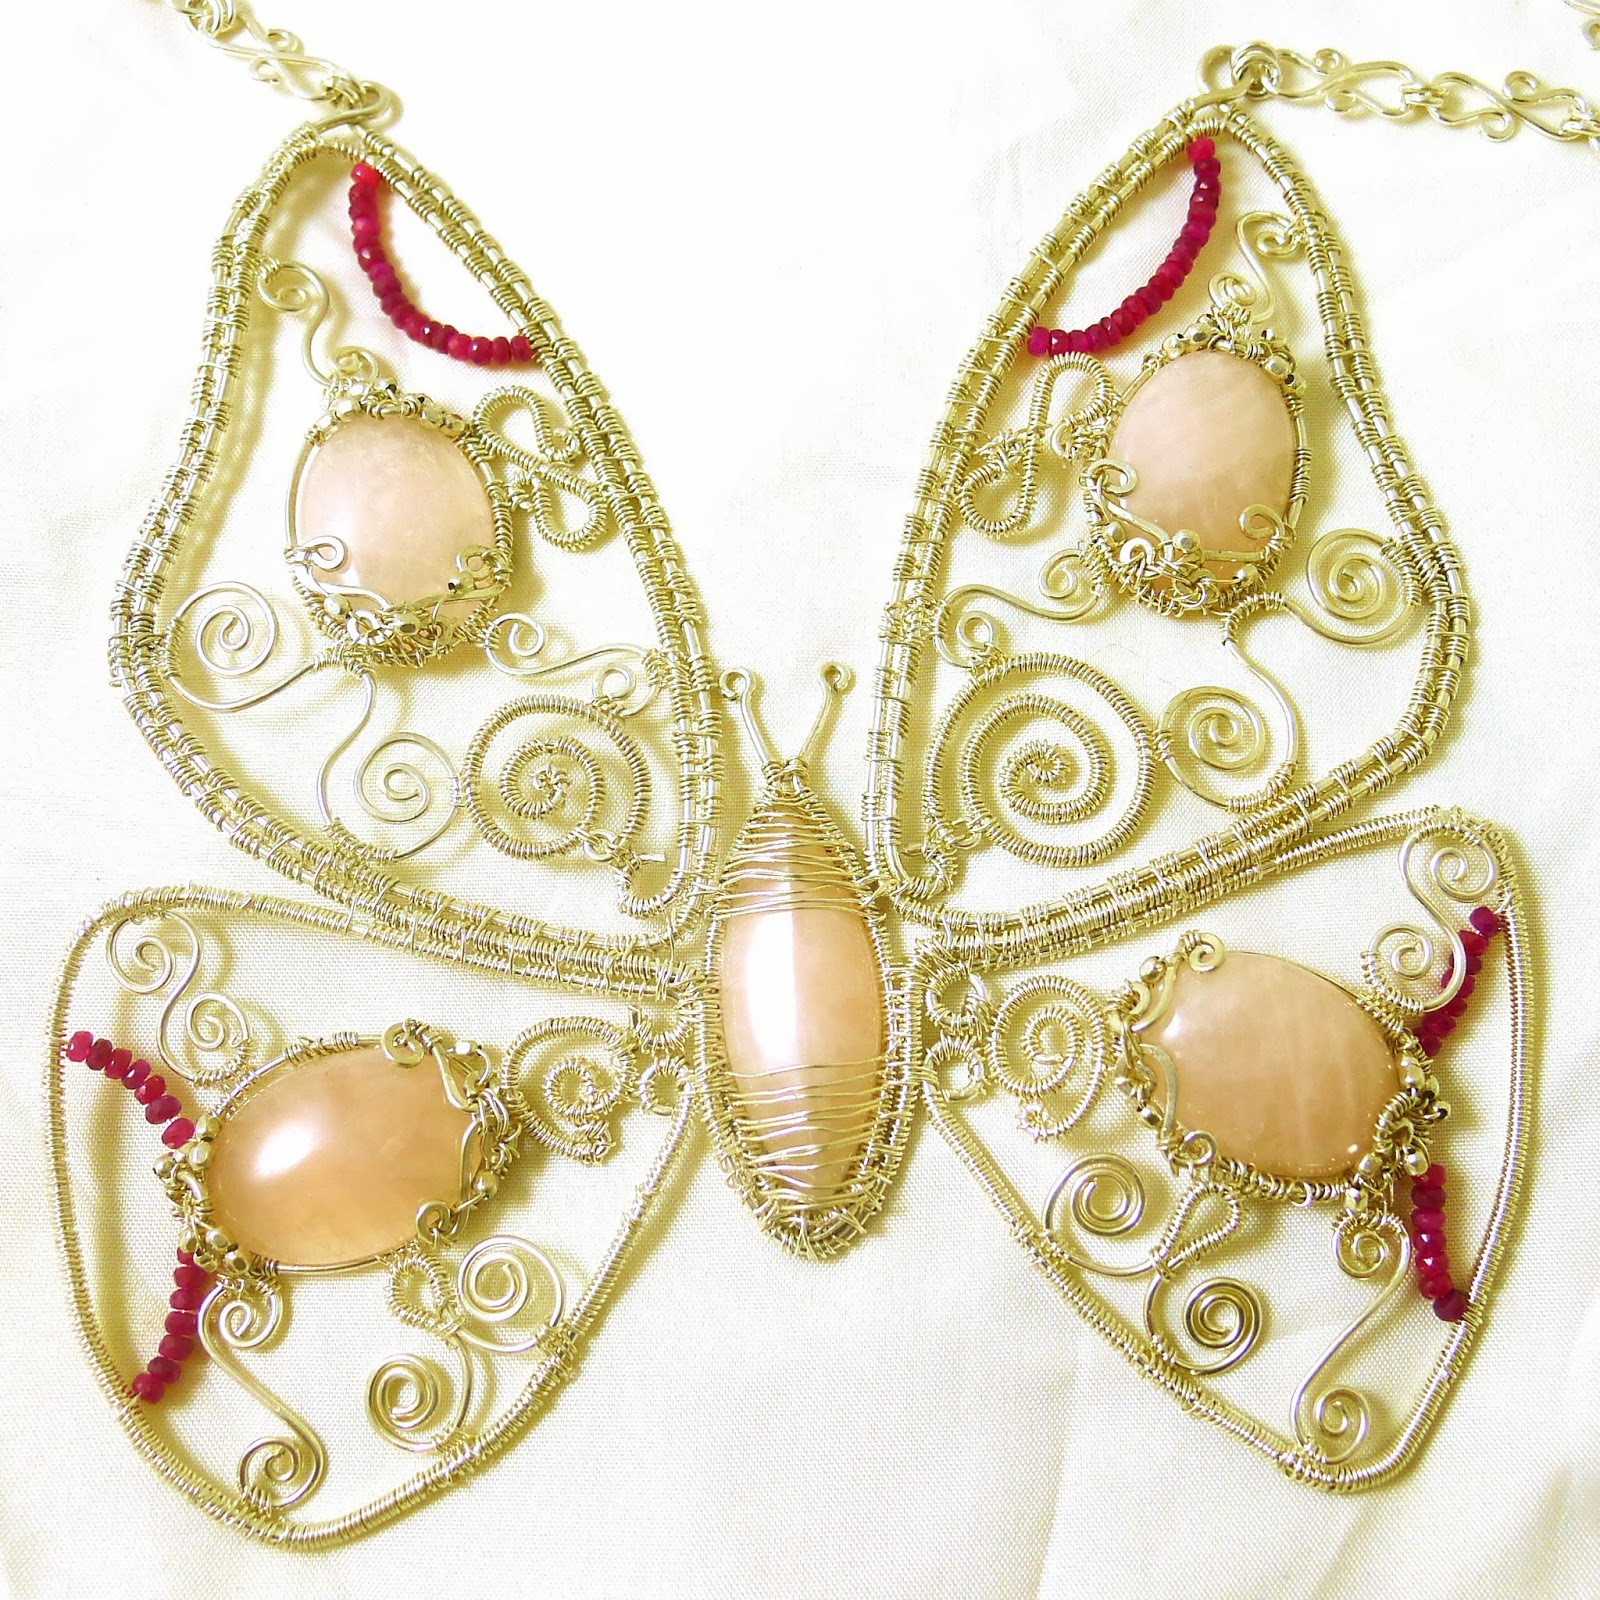 https://www.etsy.com/nz/listing/128634992/rose-quartz-filigree-butterfly-necklace?ref=shop_home_active_8